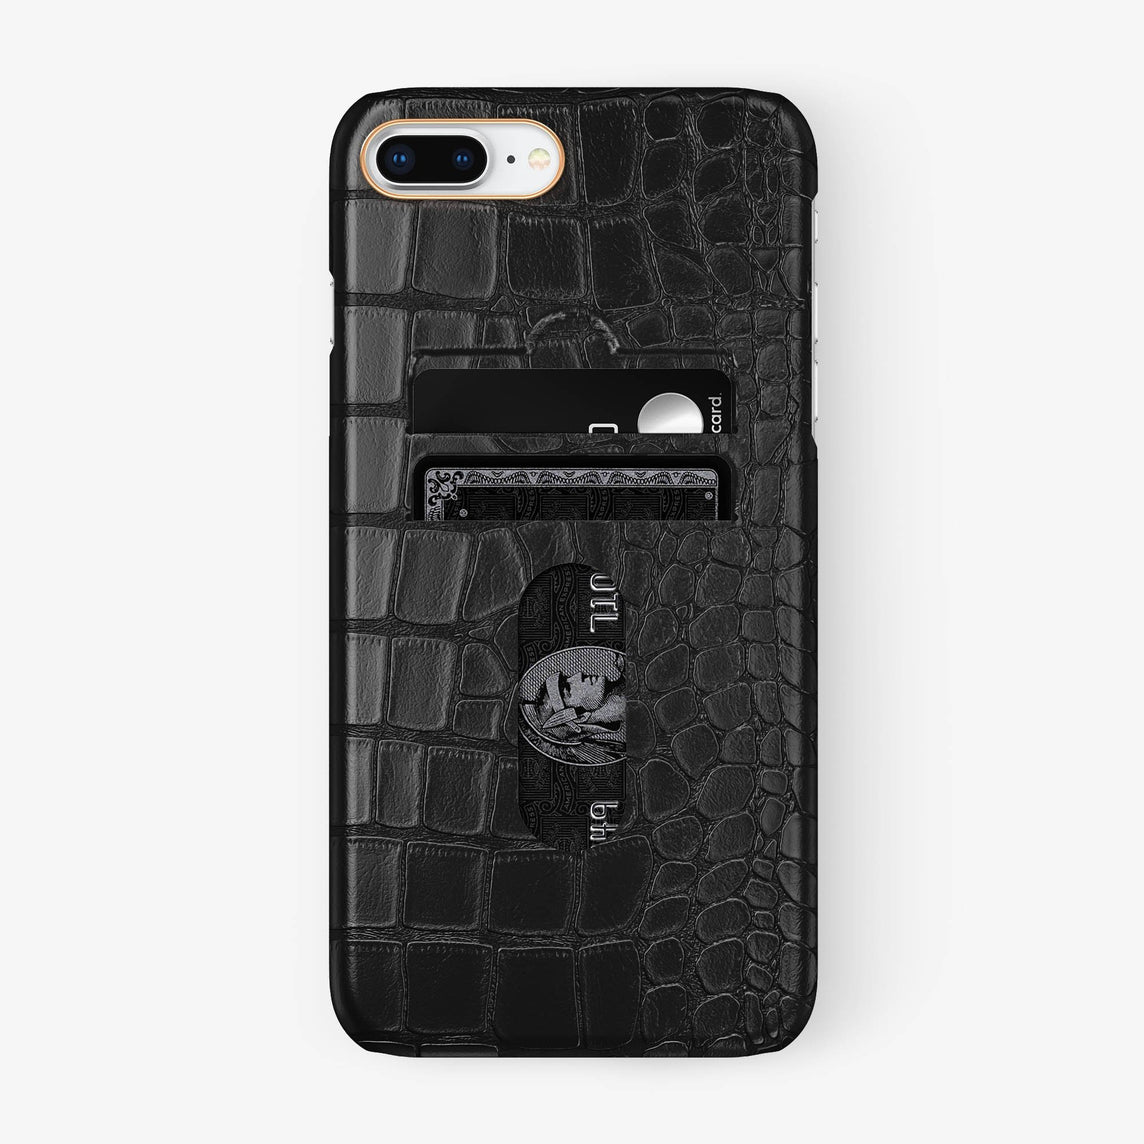 Alligator Card Holder Case iPhone 7/8 Plus | Black - Rose Gold